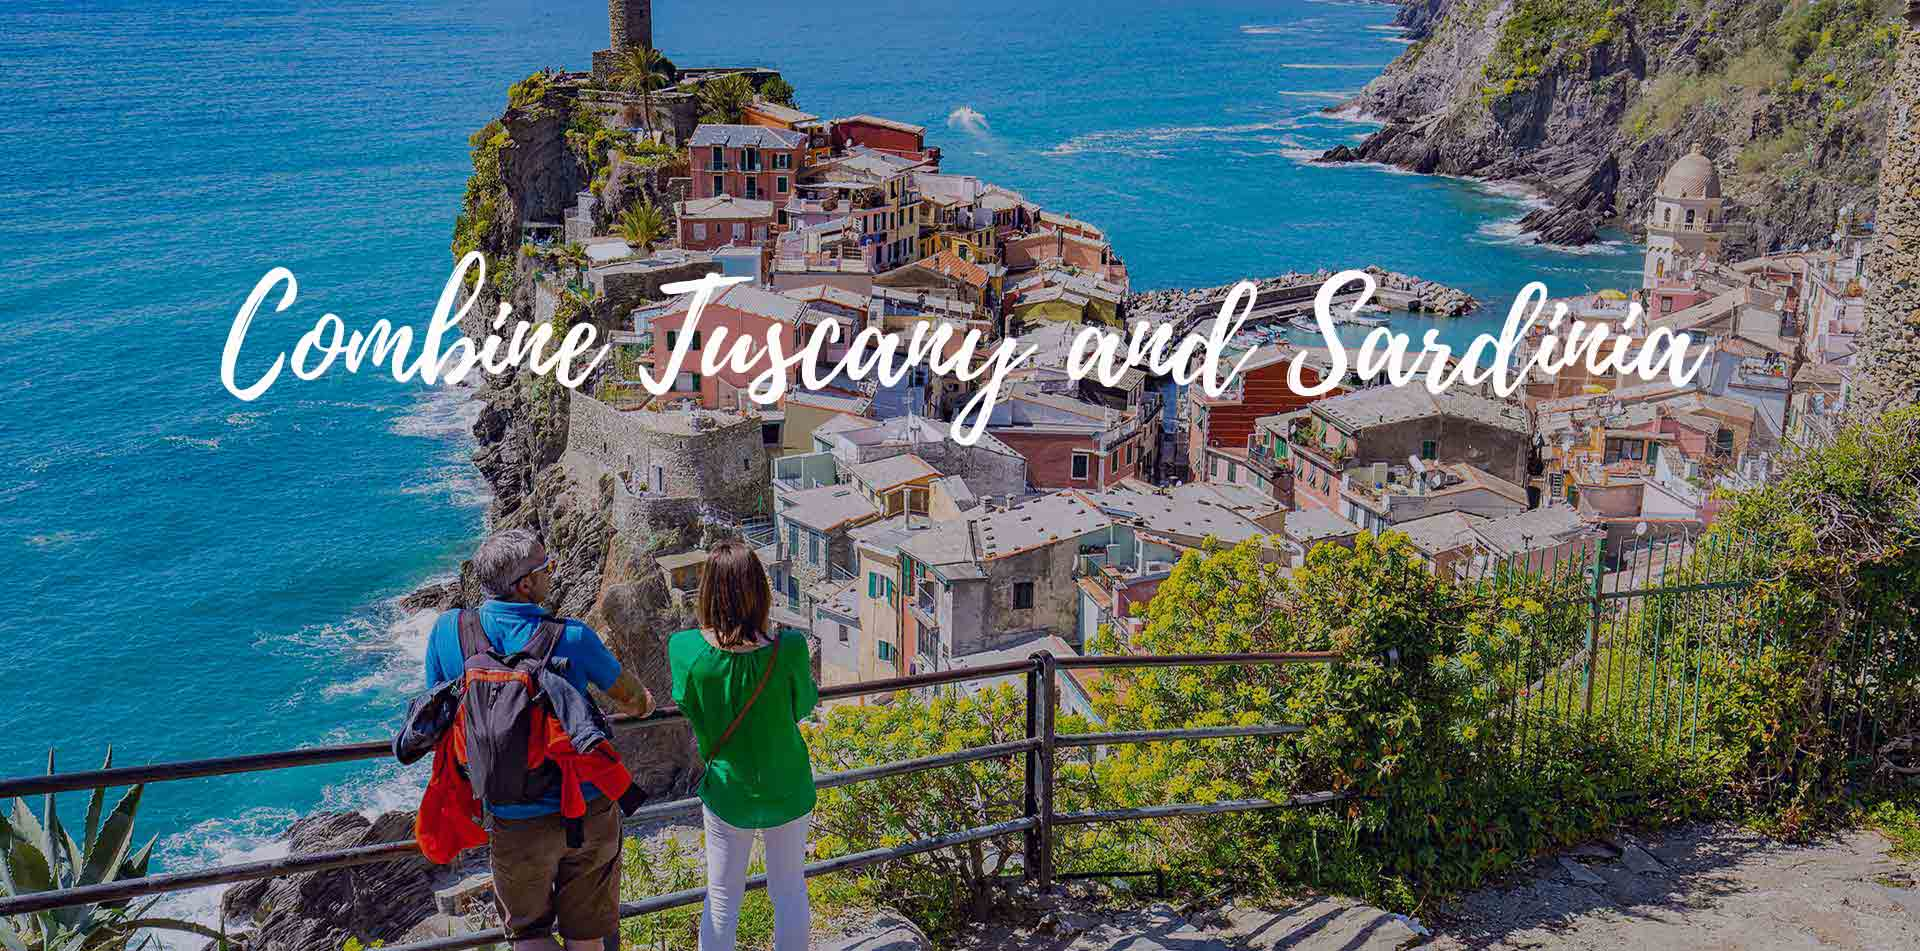 Europe Italy travelers overlooking Cinque Terre village combine Tuscany and Sardinia Corsica - luxury vacation destinations